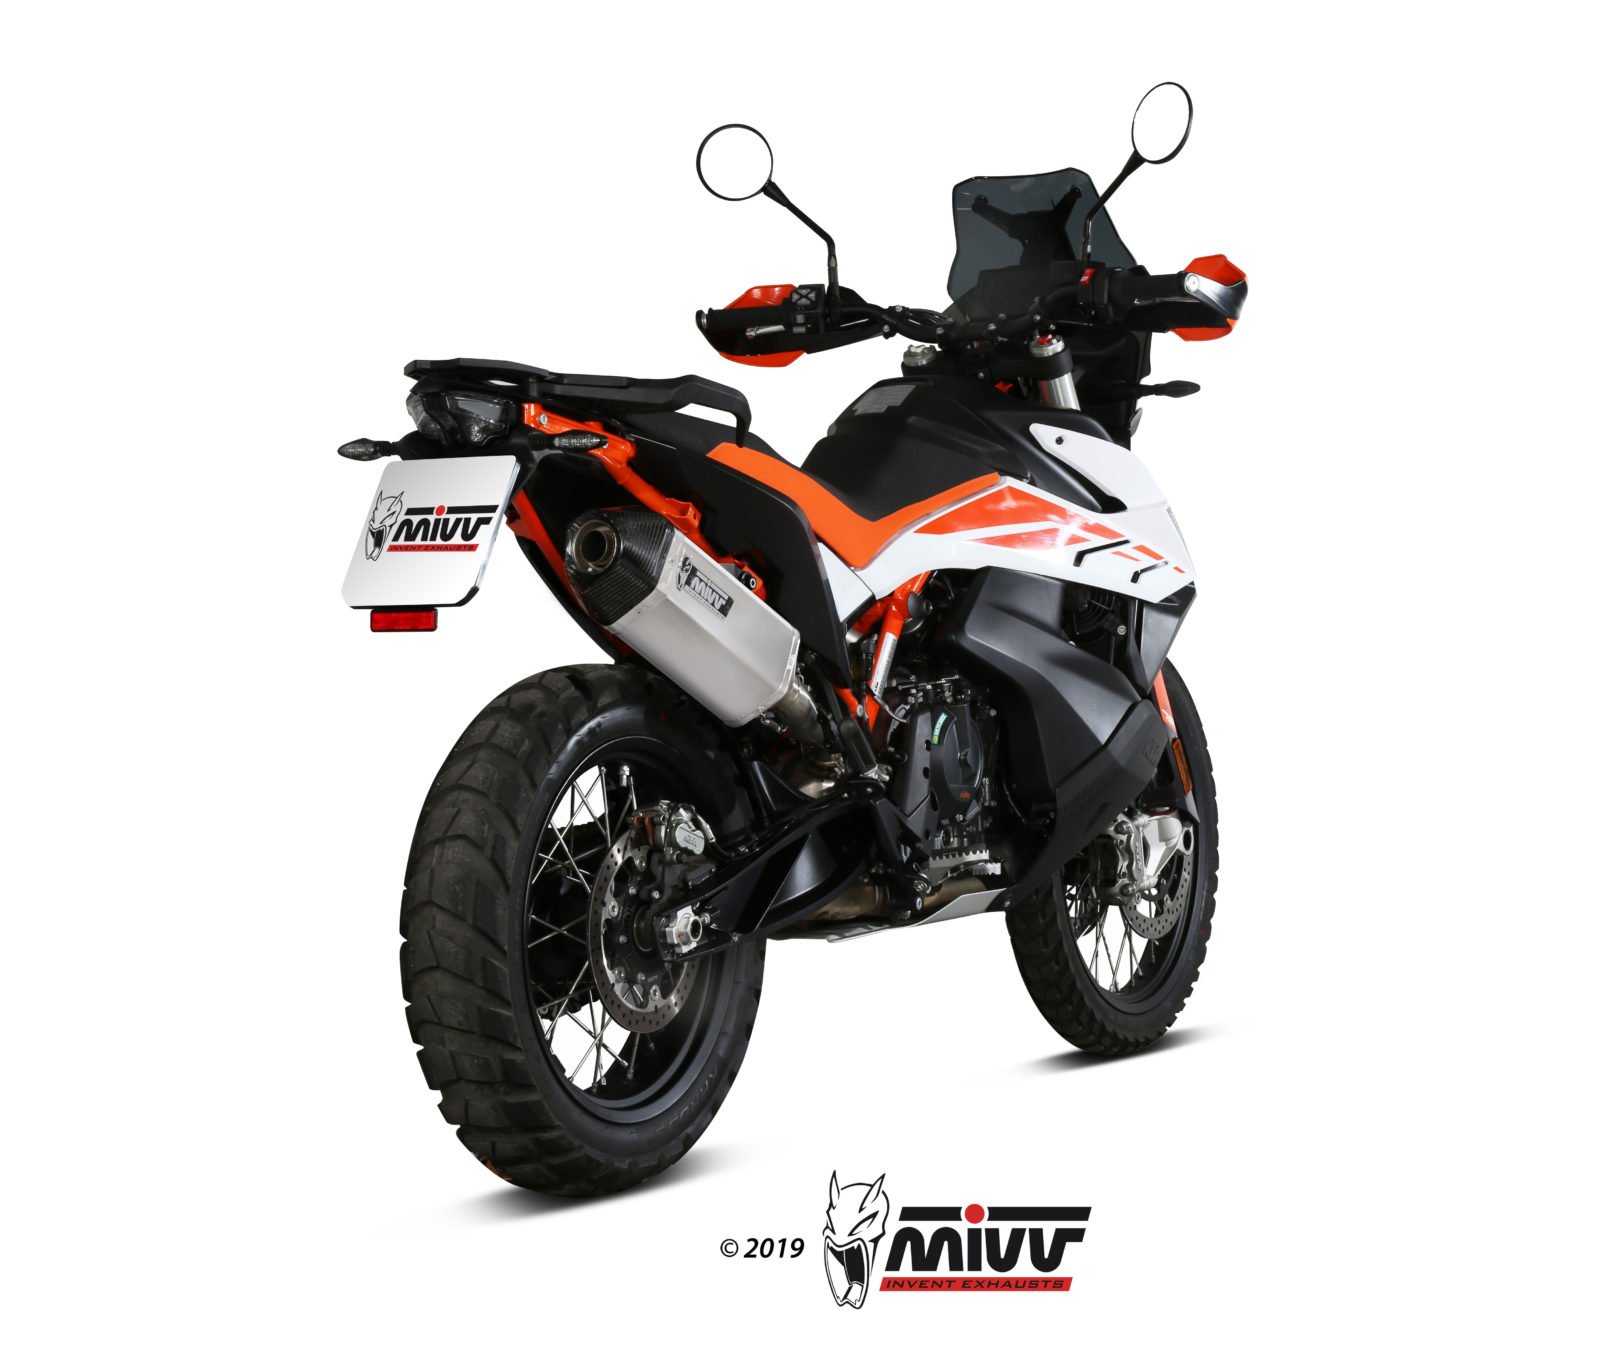 Scarico KTM 890 ADVENTURE / R Mivv Speed Edge Inox KT.021.LRX